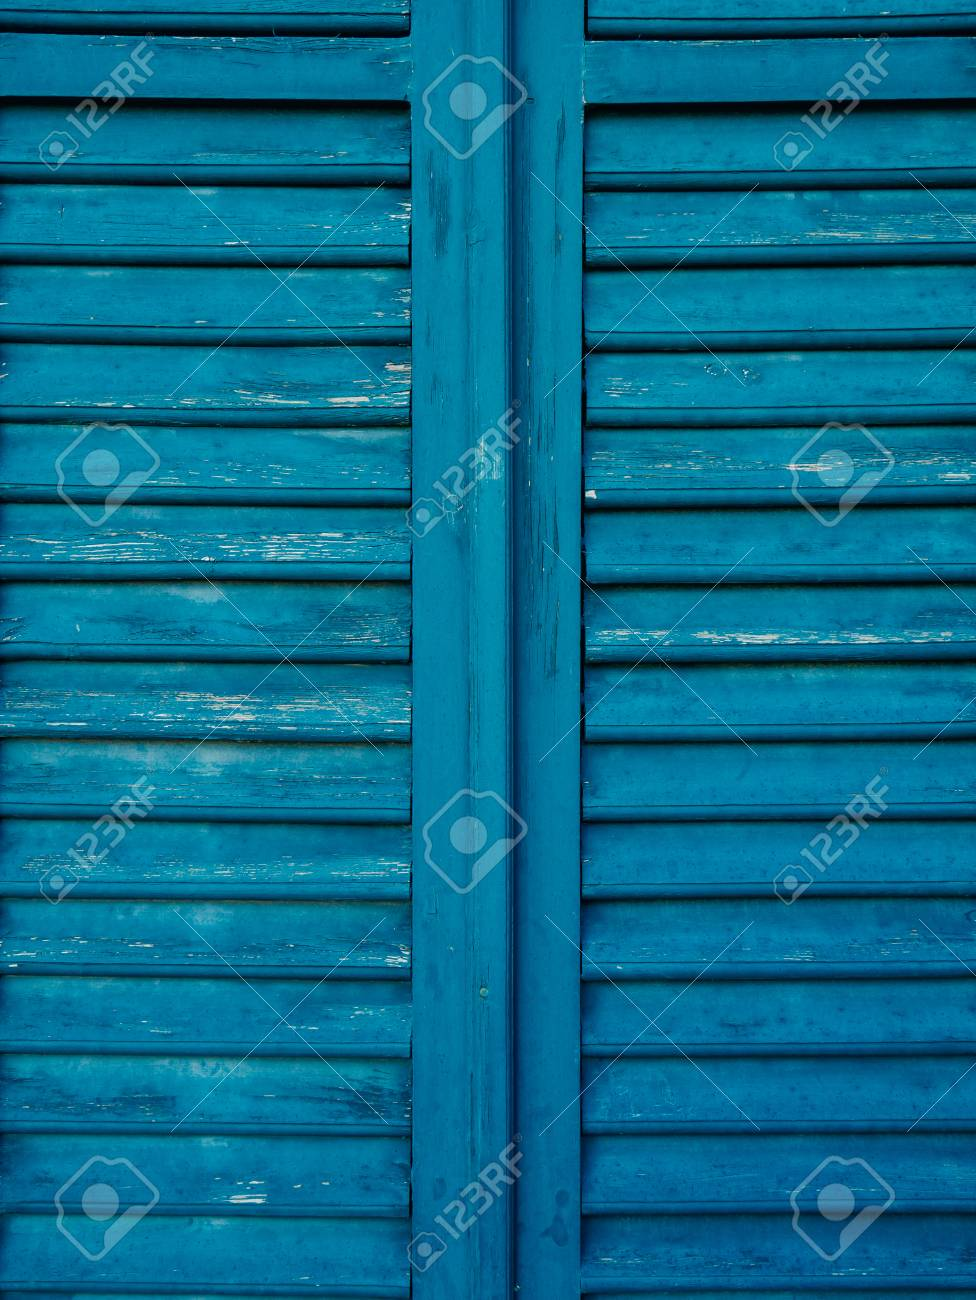 Stock Photo - Wooden window shutters in blue. Antique homemade shutters on the windows.